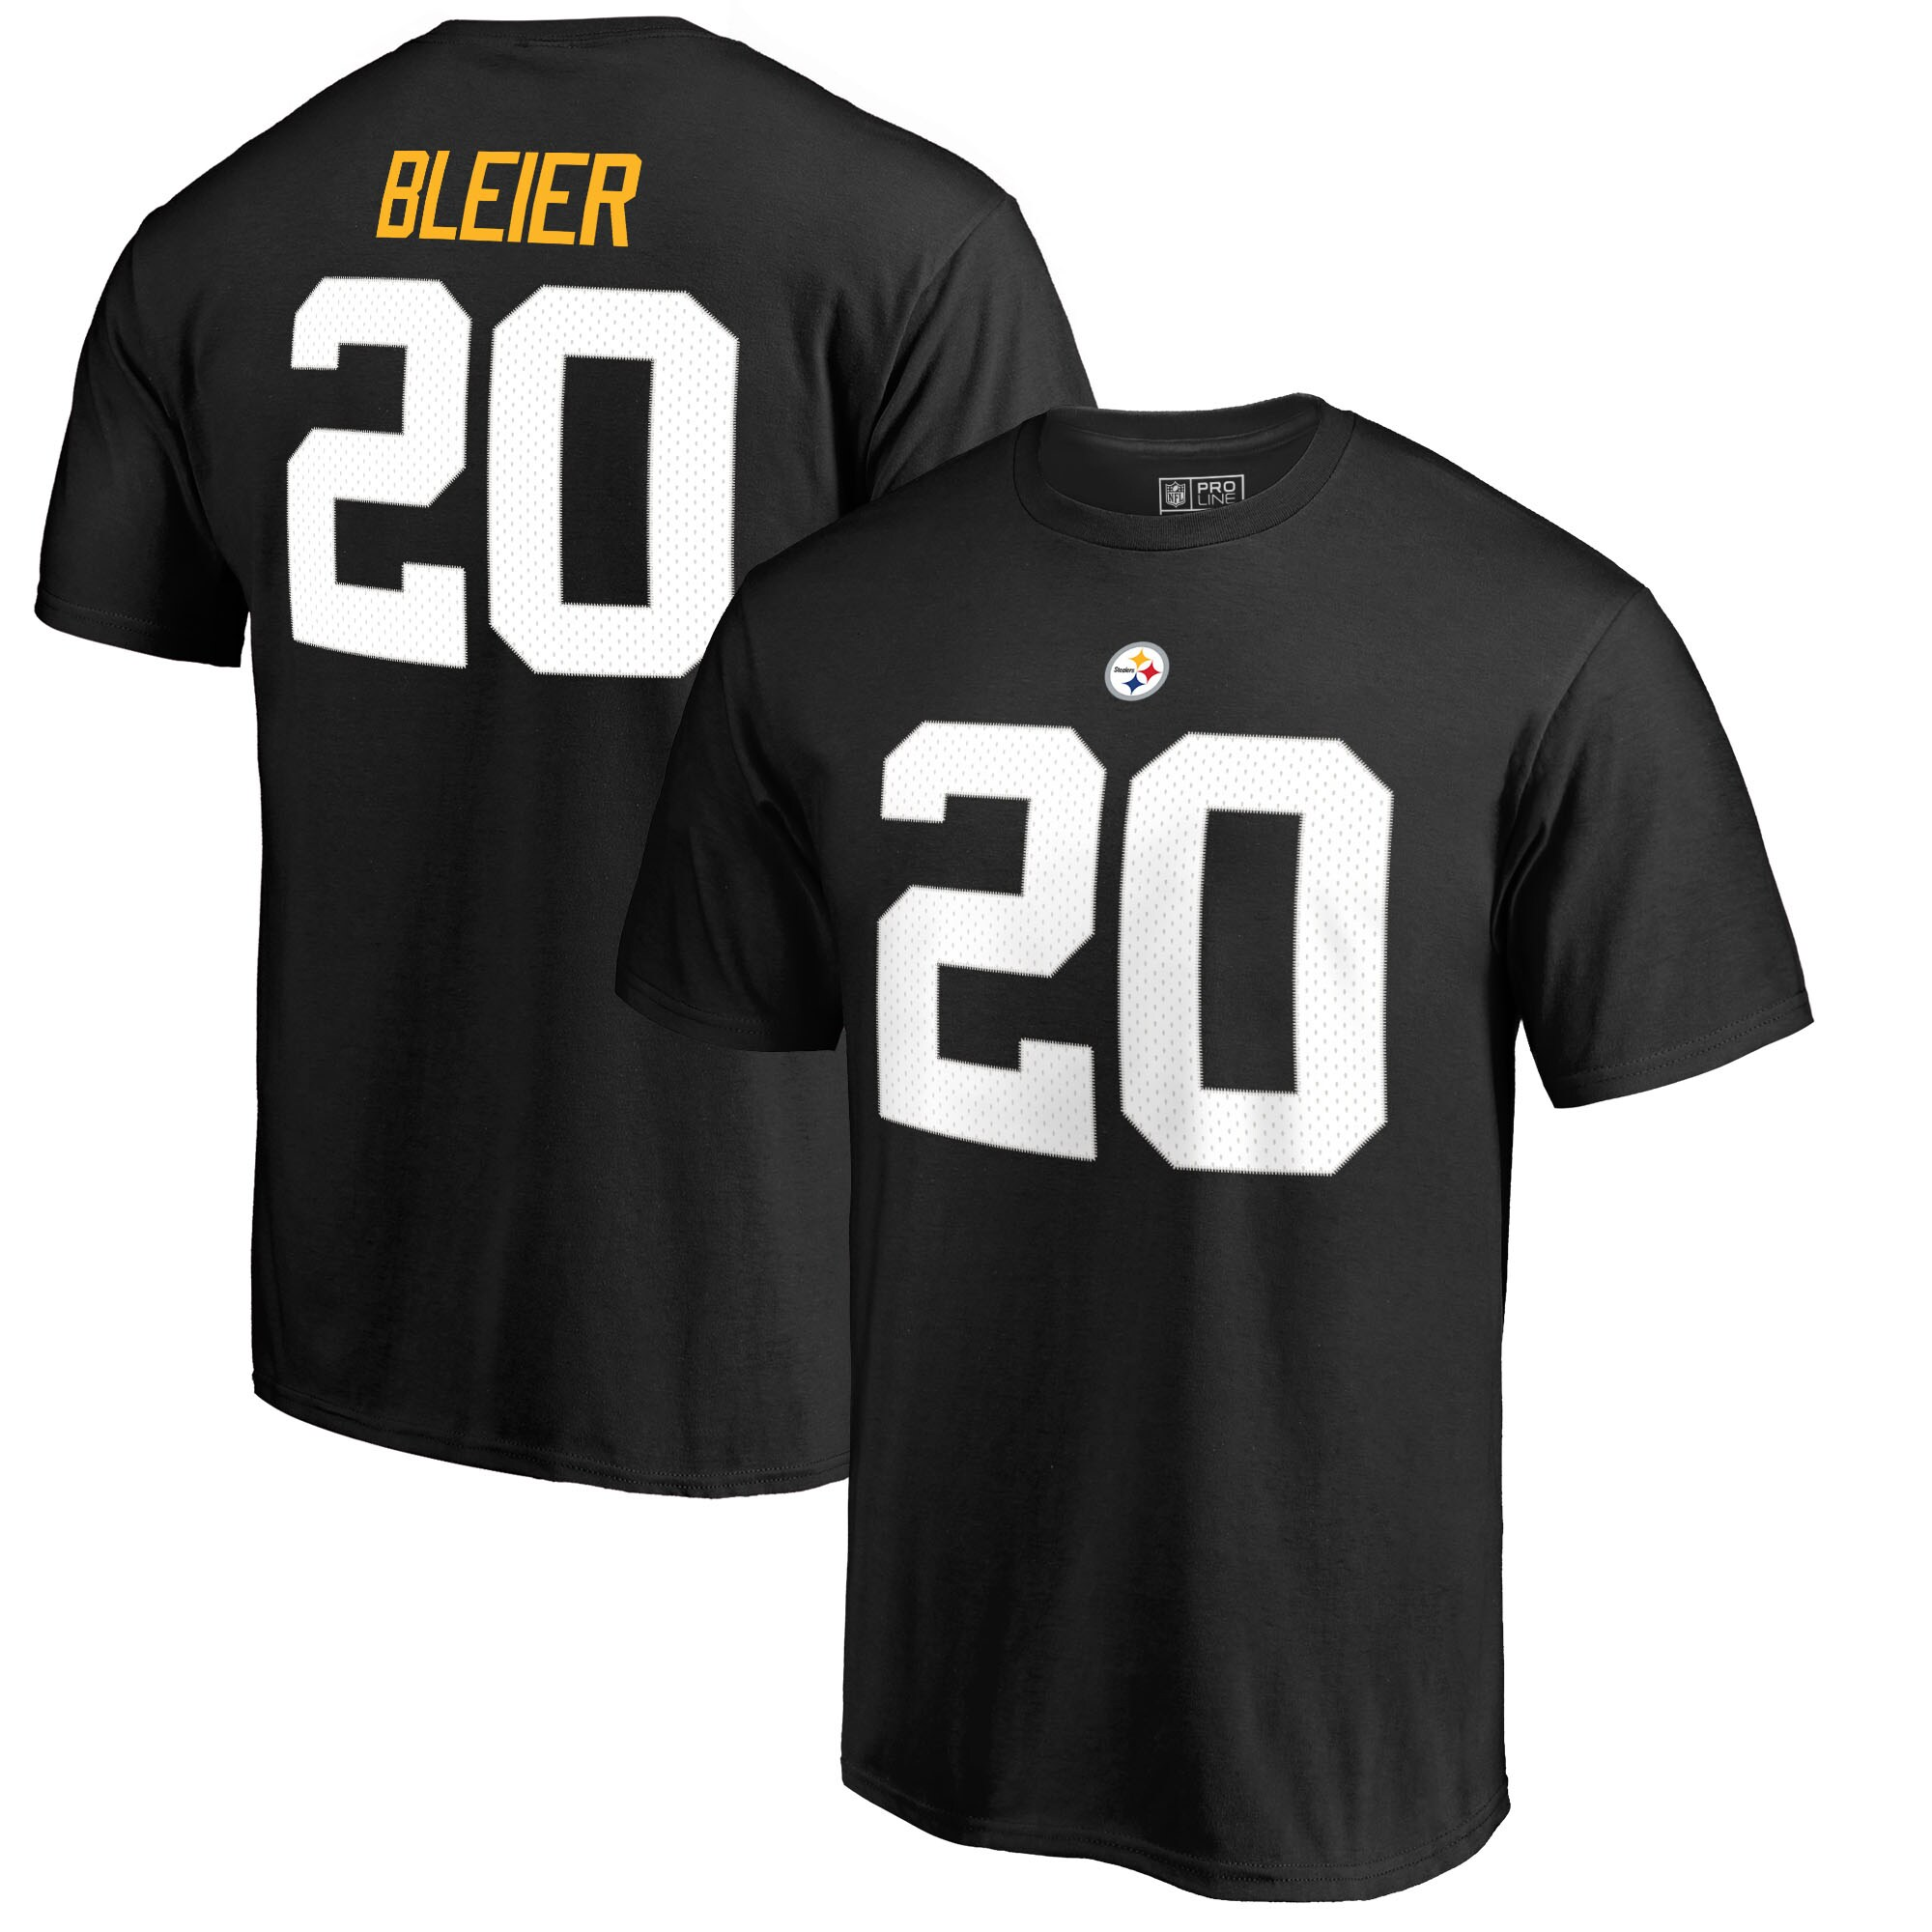 Rocky Bleier Pittsburgh Steelers NFL Pro Line by Fanatics Branded Retired Player Authentic Stack Name & Number T-Shirt - Black